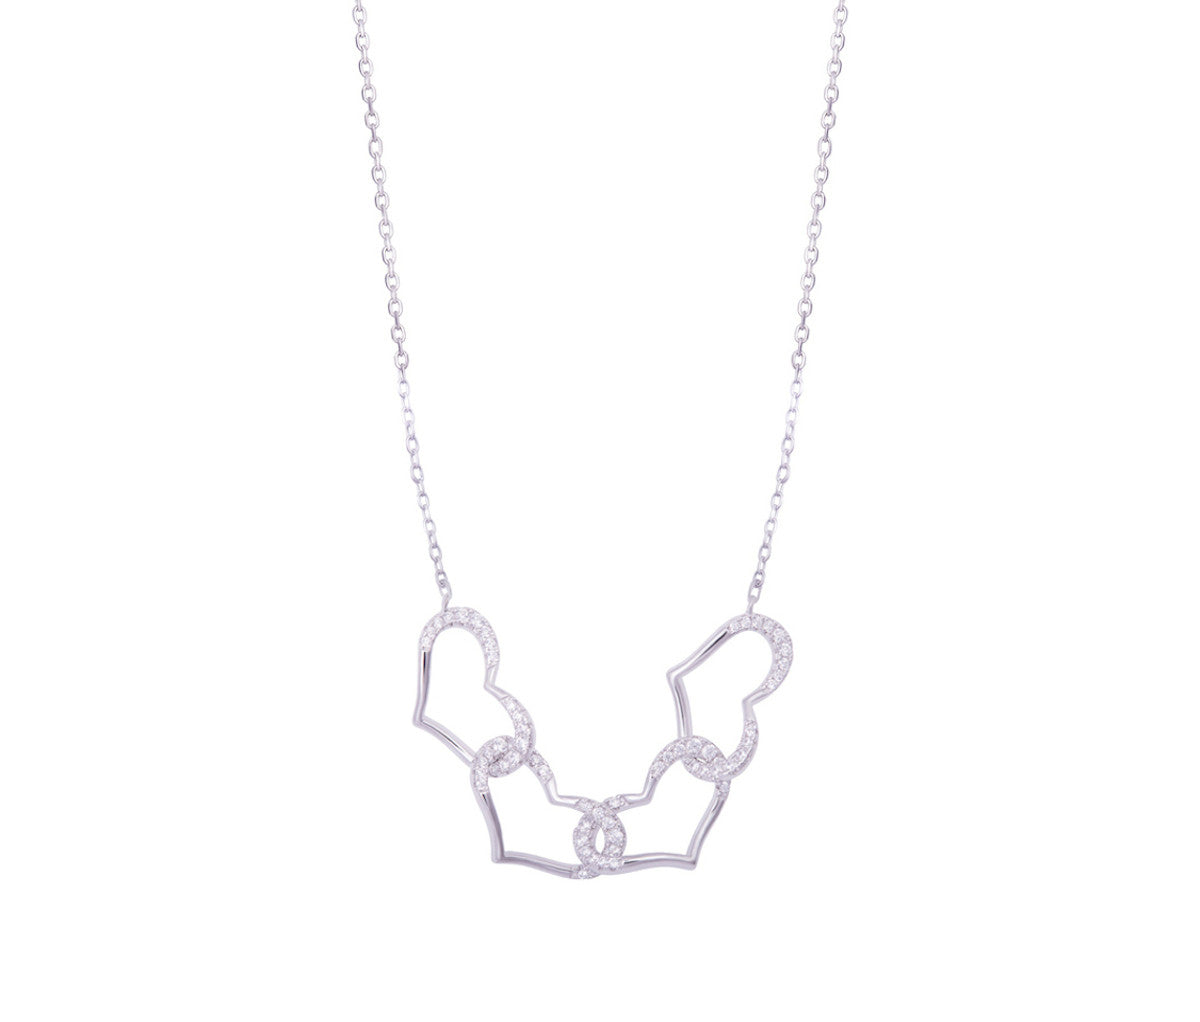 Silver Four Hearts Necklace